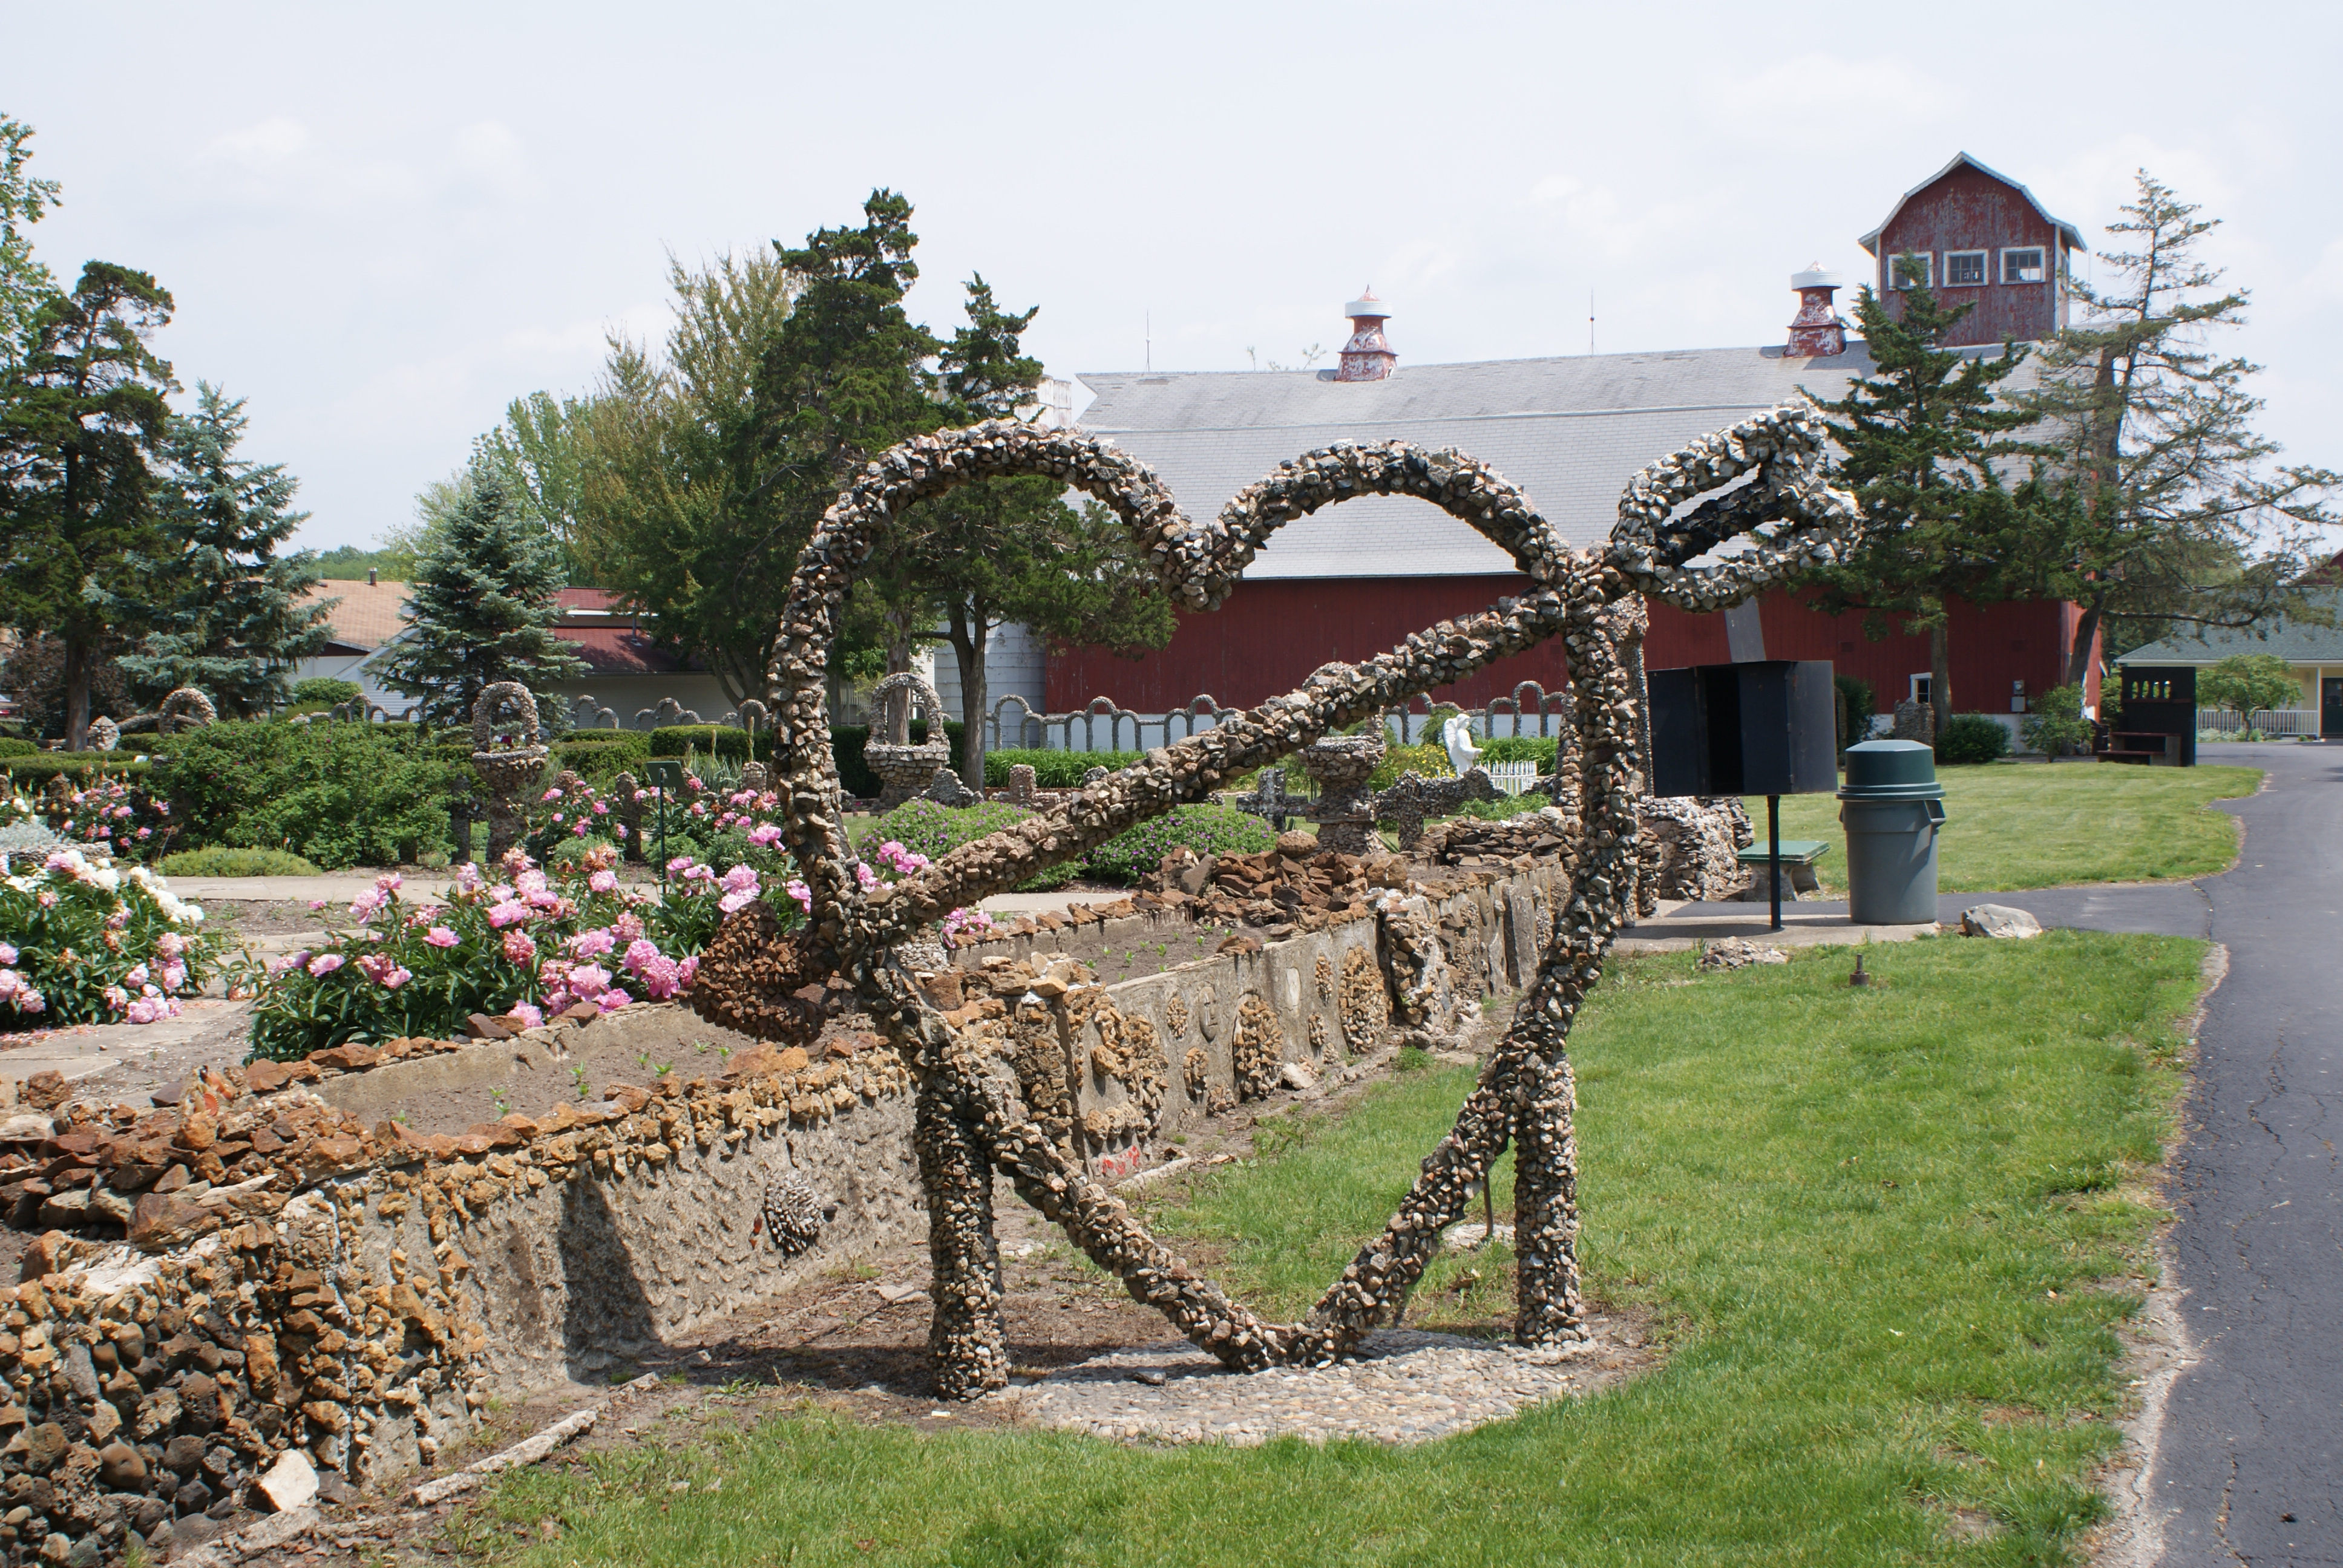 Rockome Gardens, a place of flowers and stones